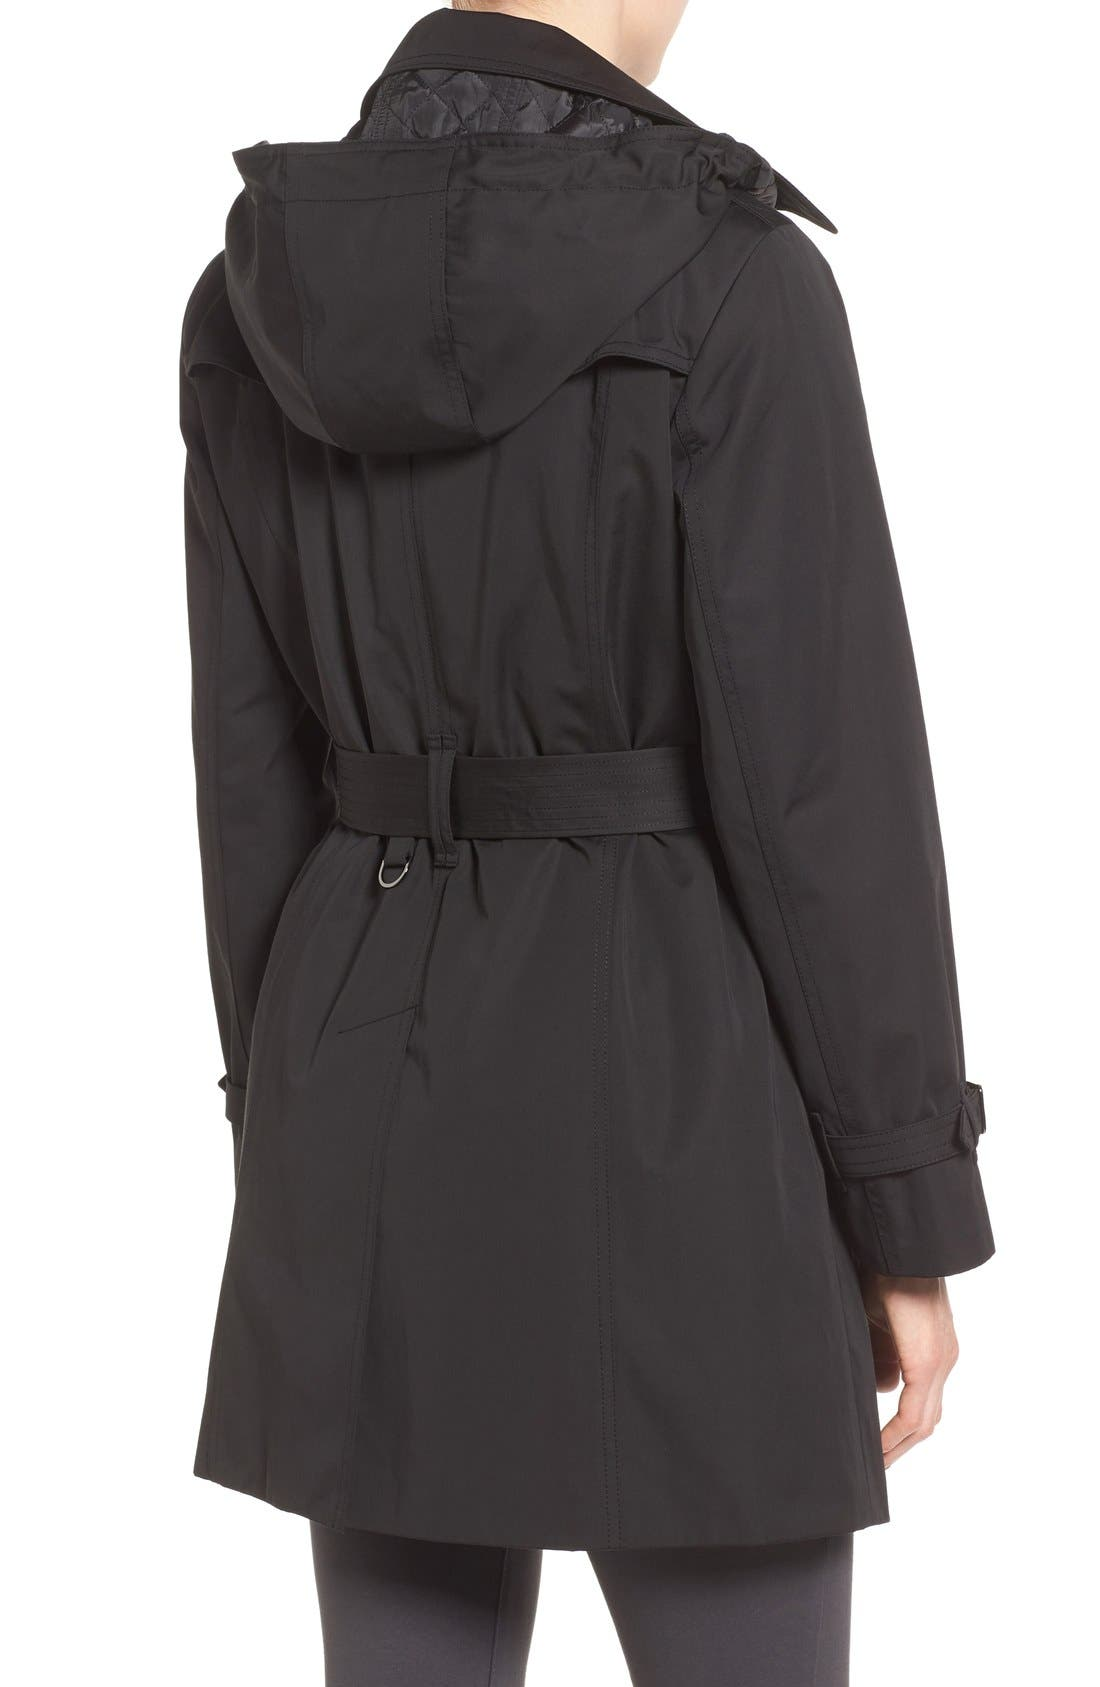 Single Breasted Trench Coat,                             Alternate thumbnail 3, color,